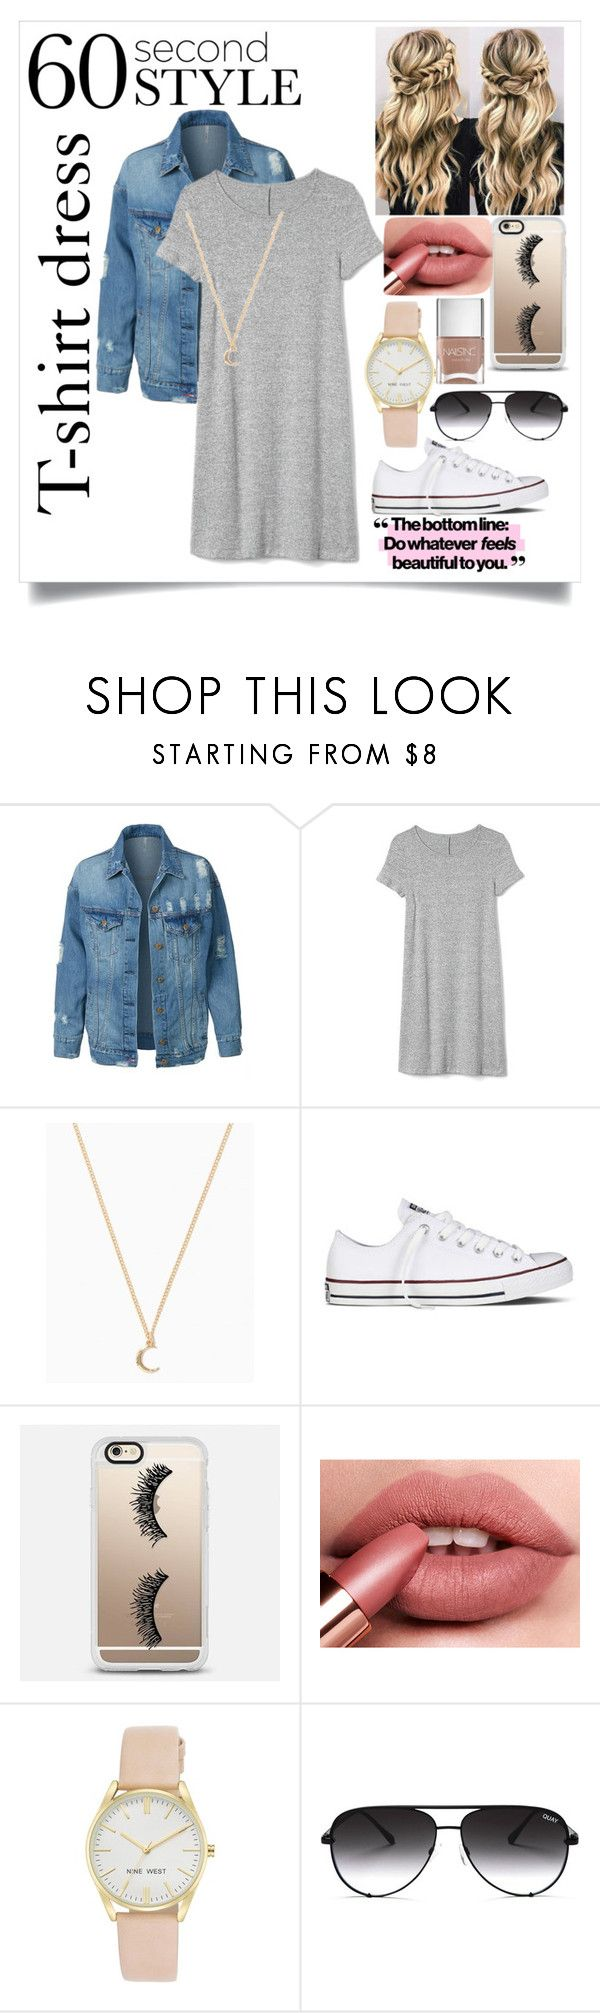 """""""The T-shirt dress"""" by lestringham ❤ liked on Polyvore featuring LE3NO, Gap, Converse, Casetify, Nine West, Quay, Nails Inc., tshirtdresses and 60secondstyle"""